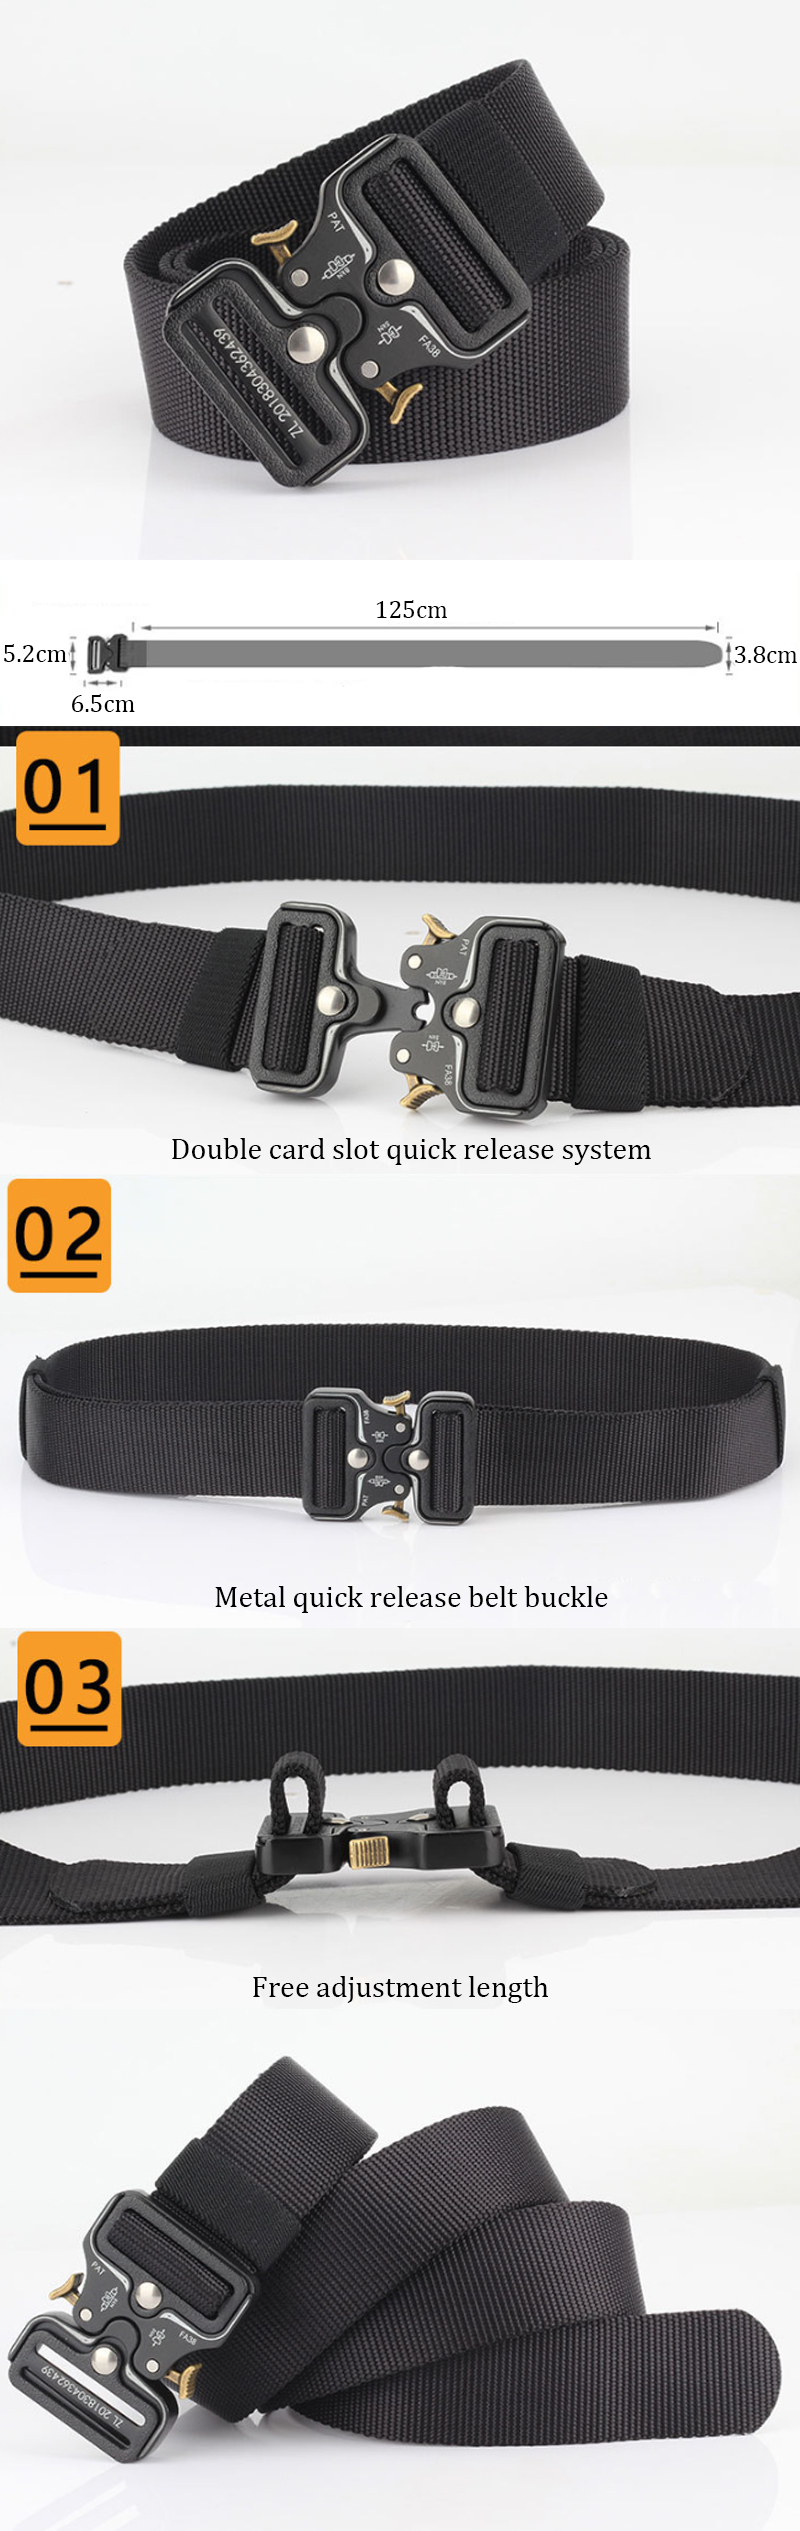 125cm AWMN S05-1 3.8cm Tactical Belt Quick Release Buckle Outdoor Hunting Camping Adjustable Nylon Belts